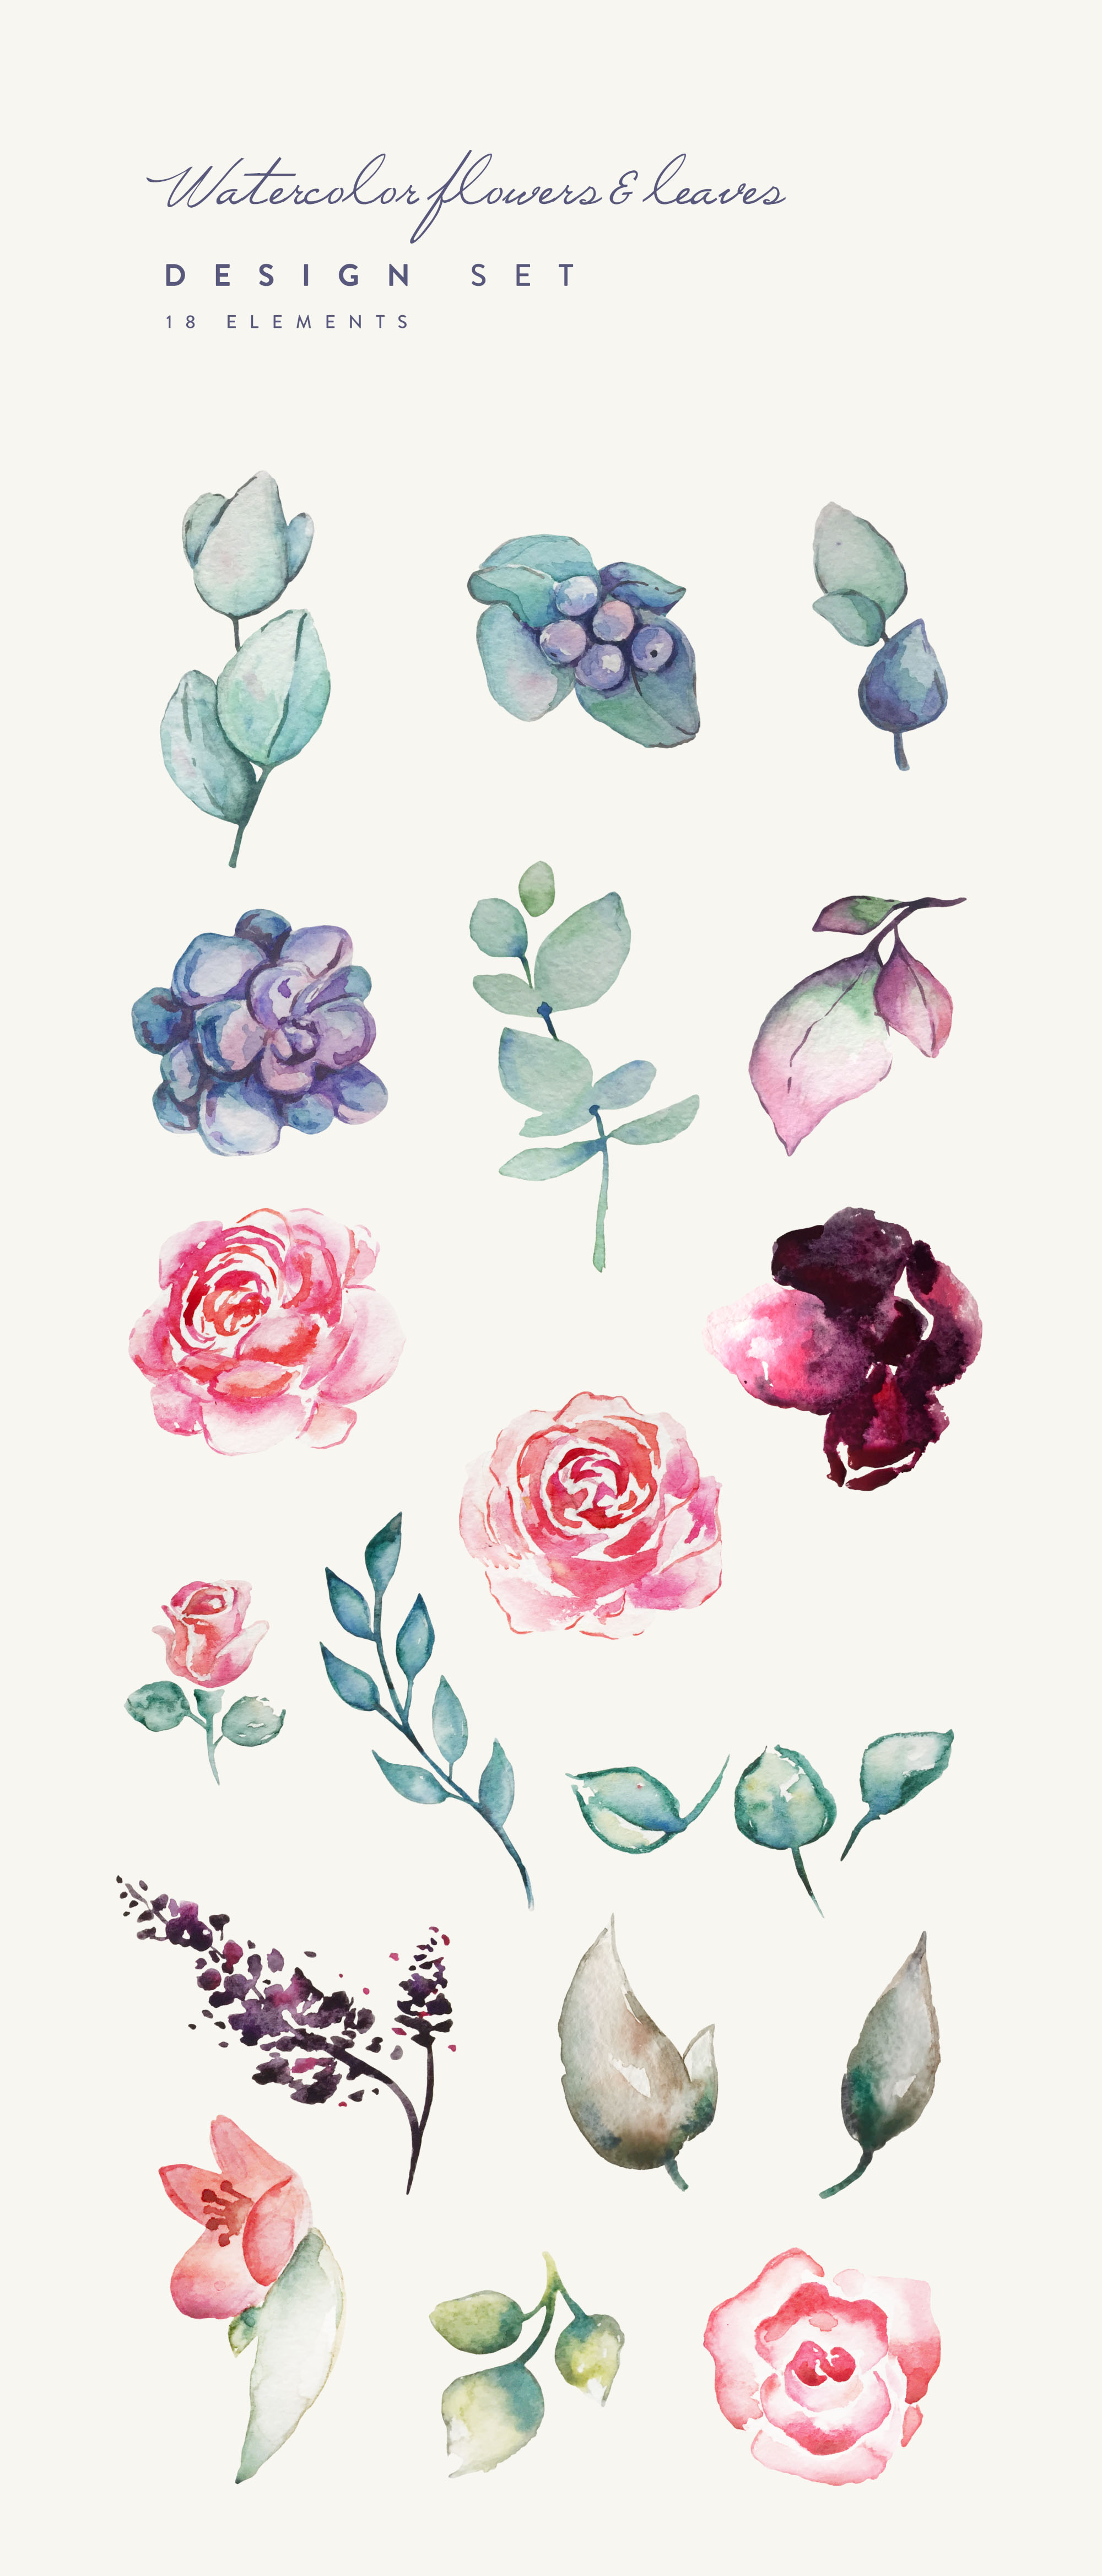 Watercolor Flowers & Leaves Design Elements